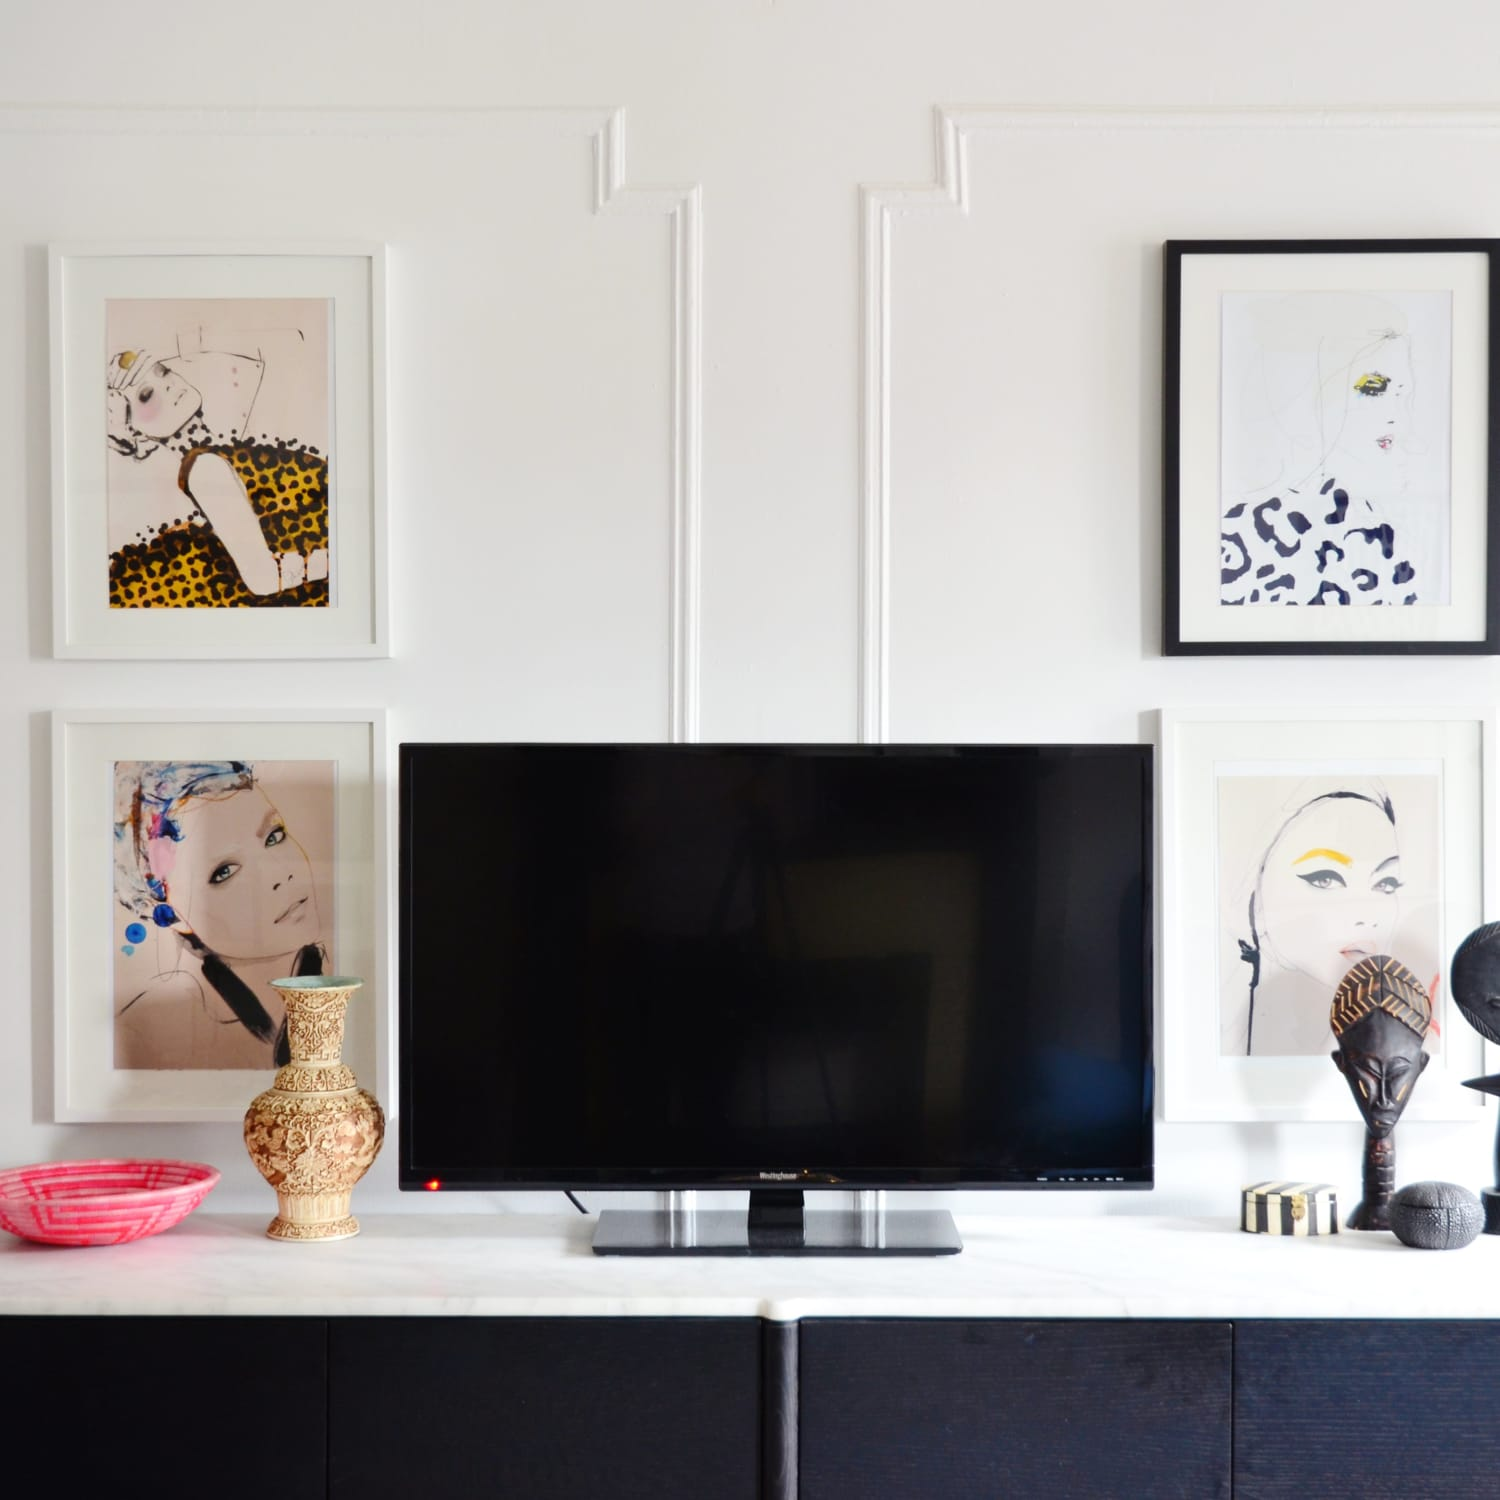 5 Ways To Decorate Around Your Tv Using Art Apartment Therapy